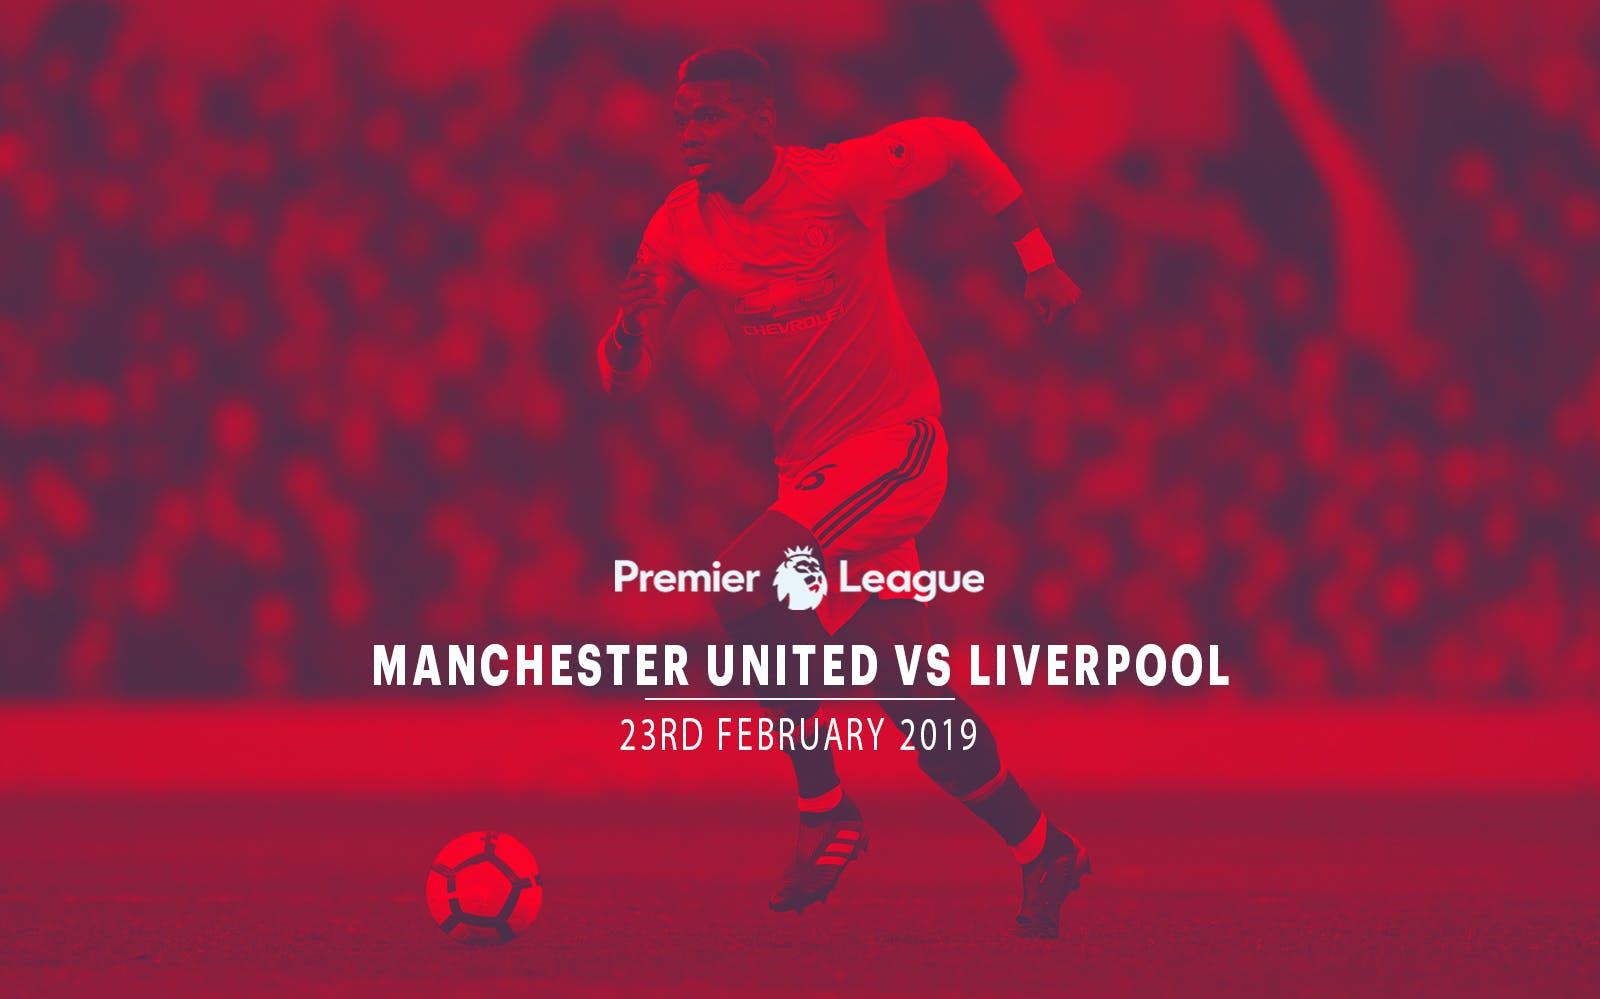 manchester united vs liverpool-23 feb 2019-1